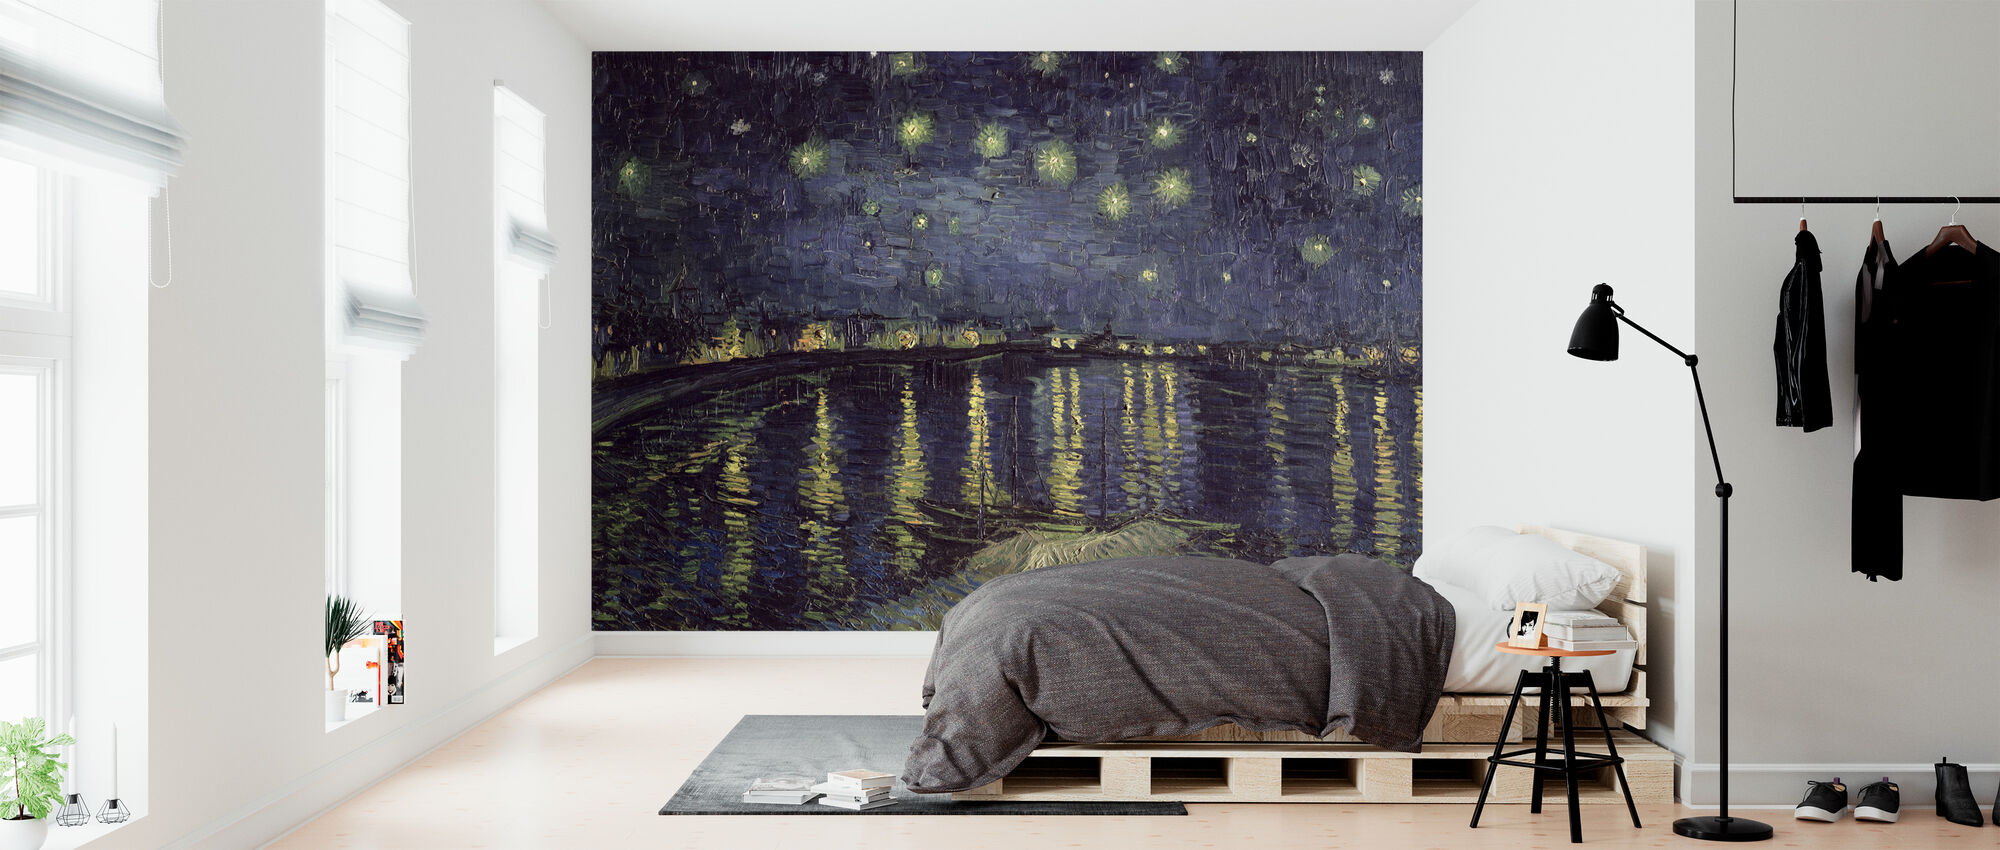 Starry Night Vincent Van Gogh High Quality Wall Murals With